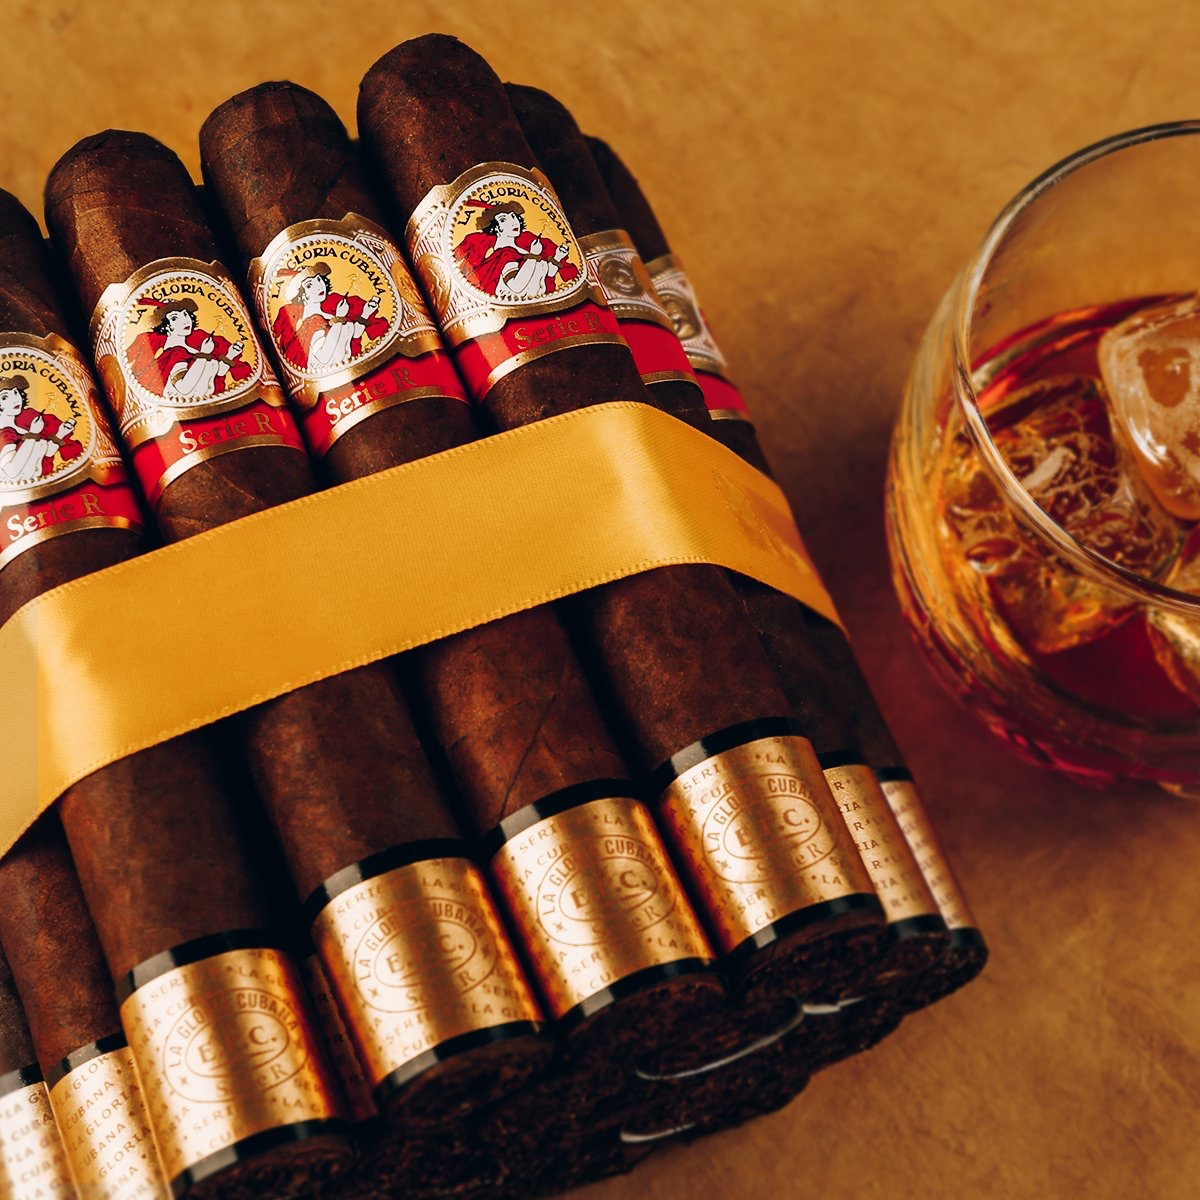 la gloria cubana series r cigar bundle image